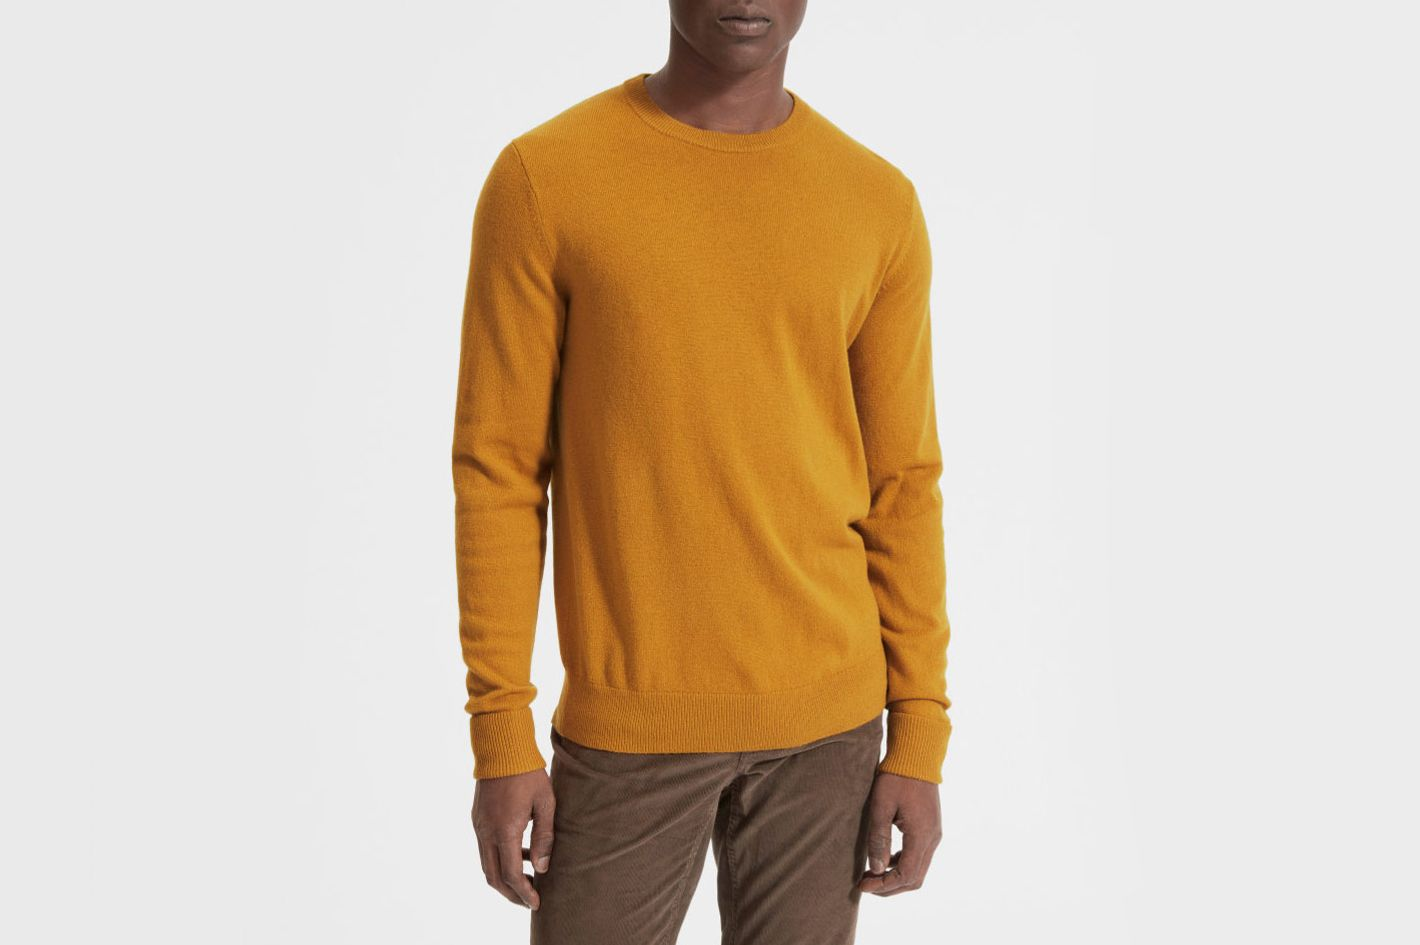 Everlane Men's Cashmere Crew